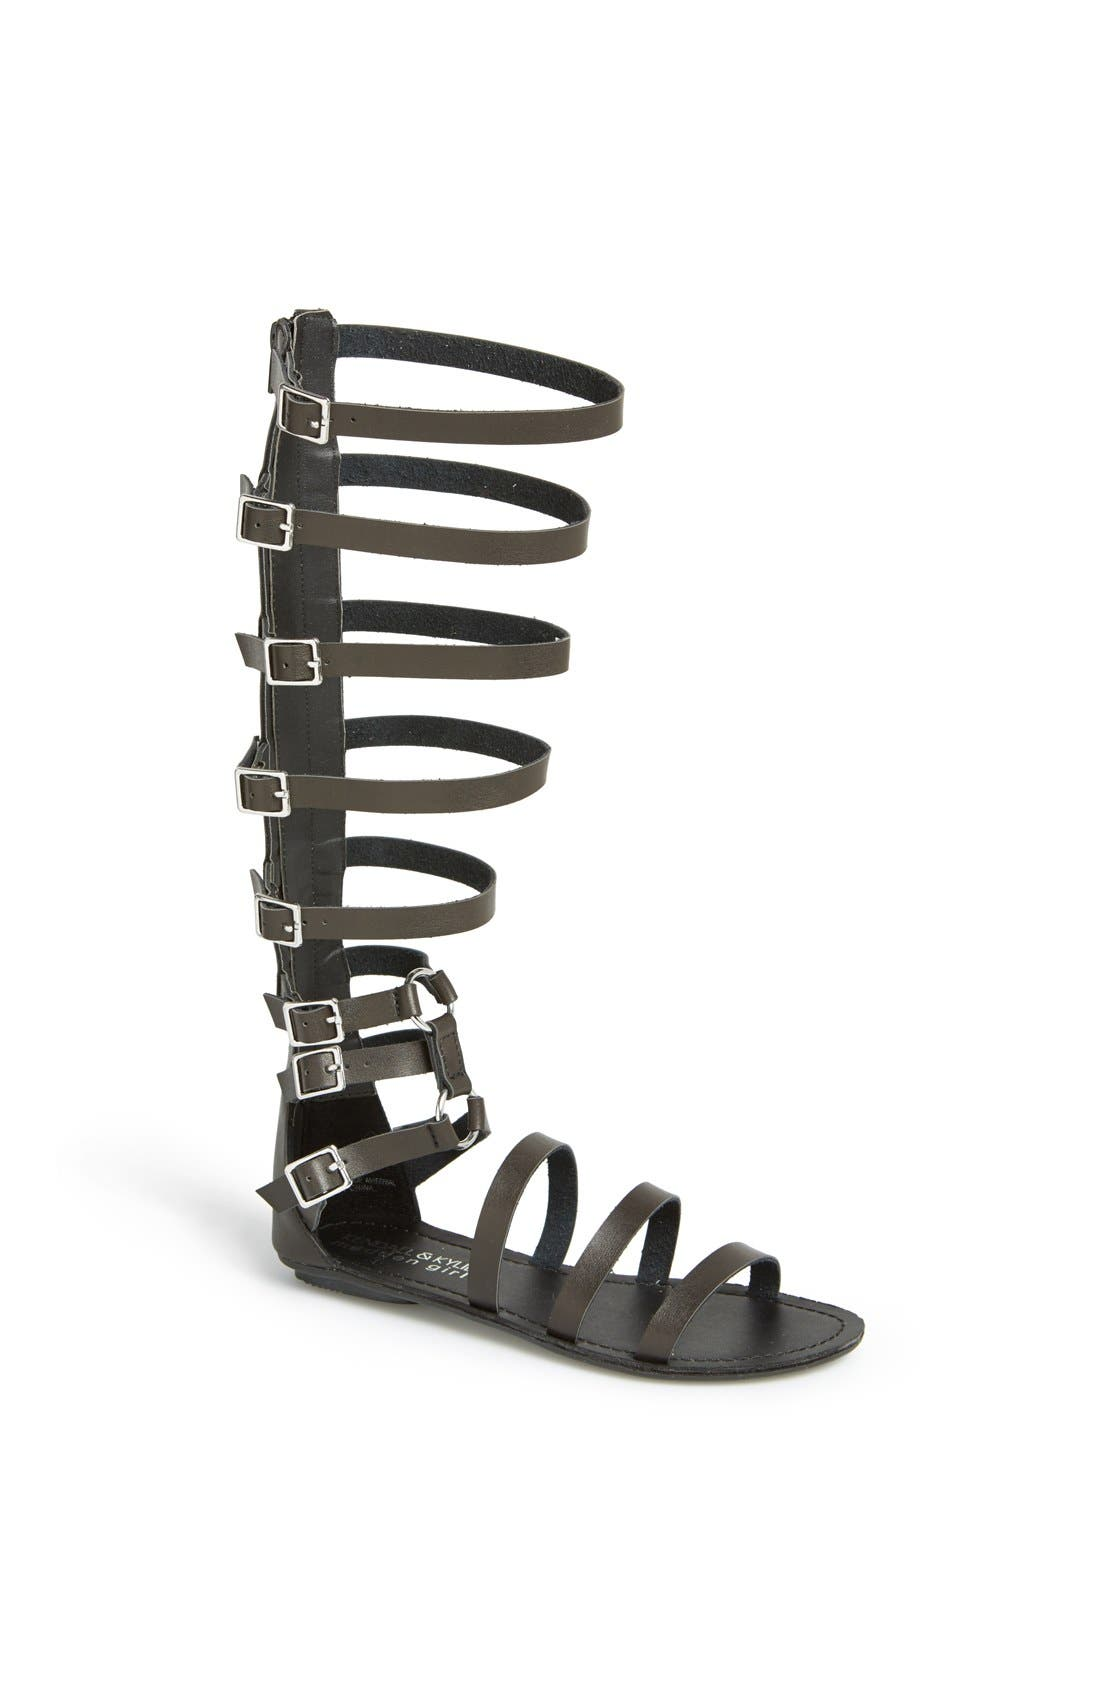 KENDALL & KYLIE KENDALL + KYLIE Madden Girl 'Seriious' Sandal, Main, color, 001